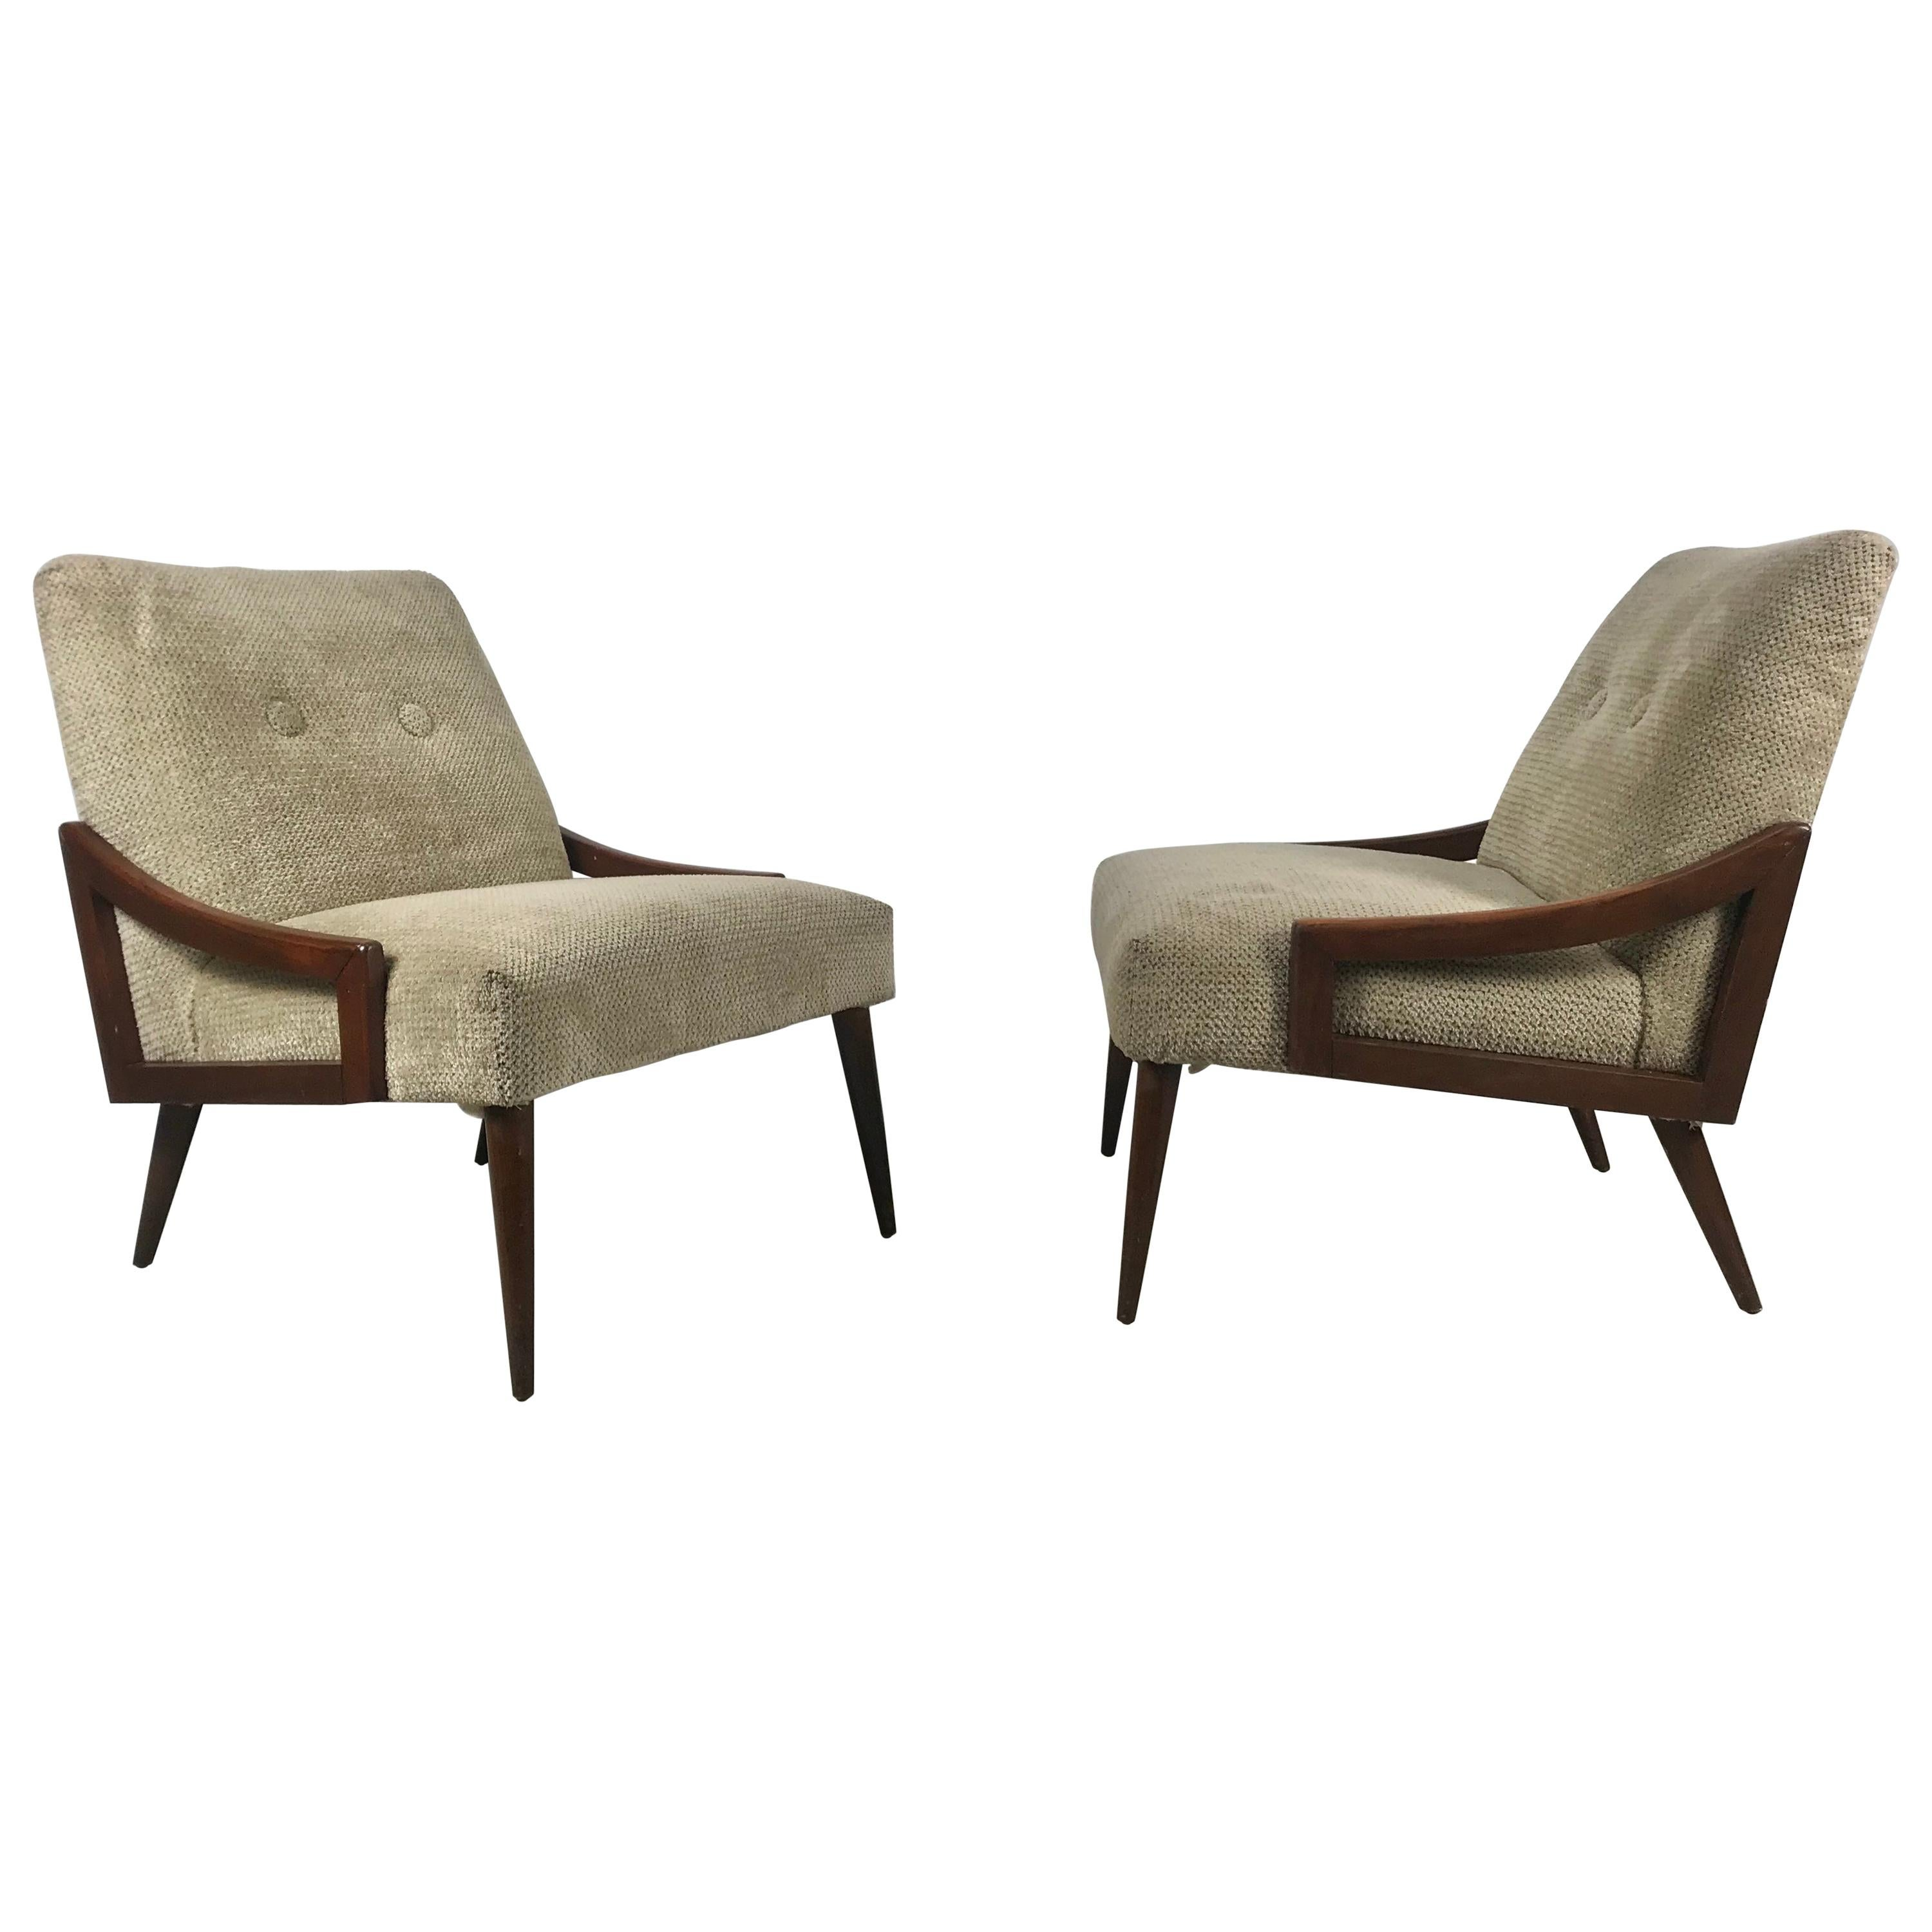 Stunning Pair of Italian Modernist Lounge Chairs after Gio Ponti